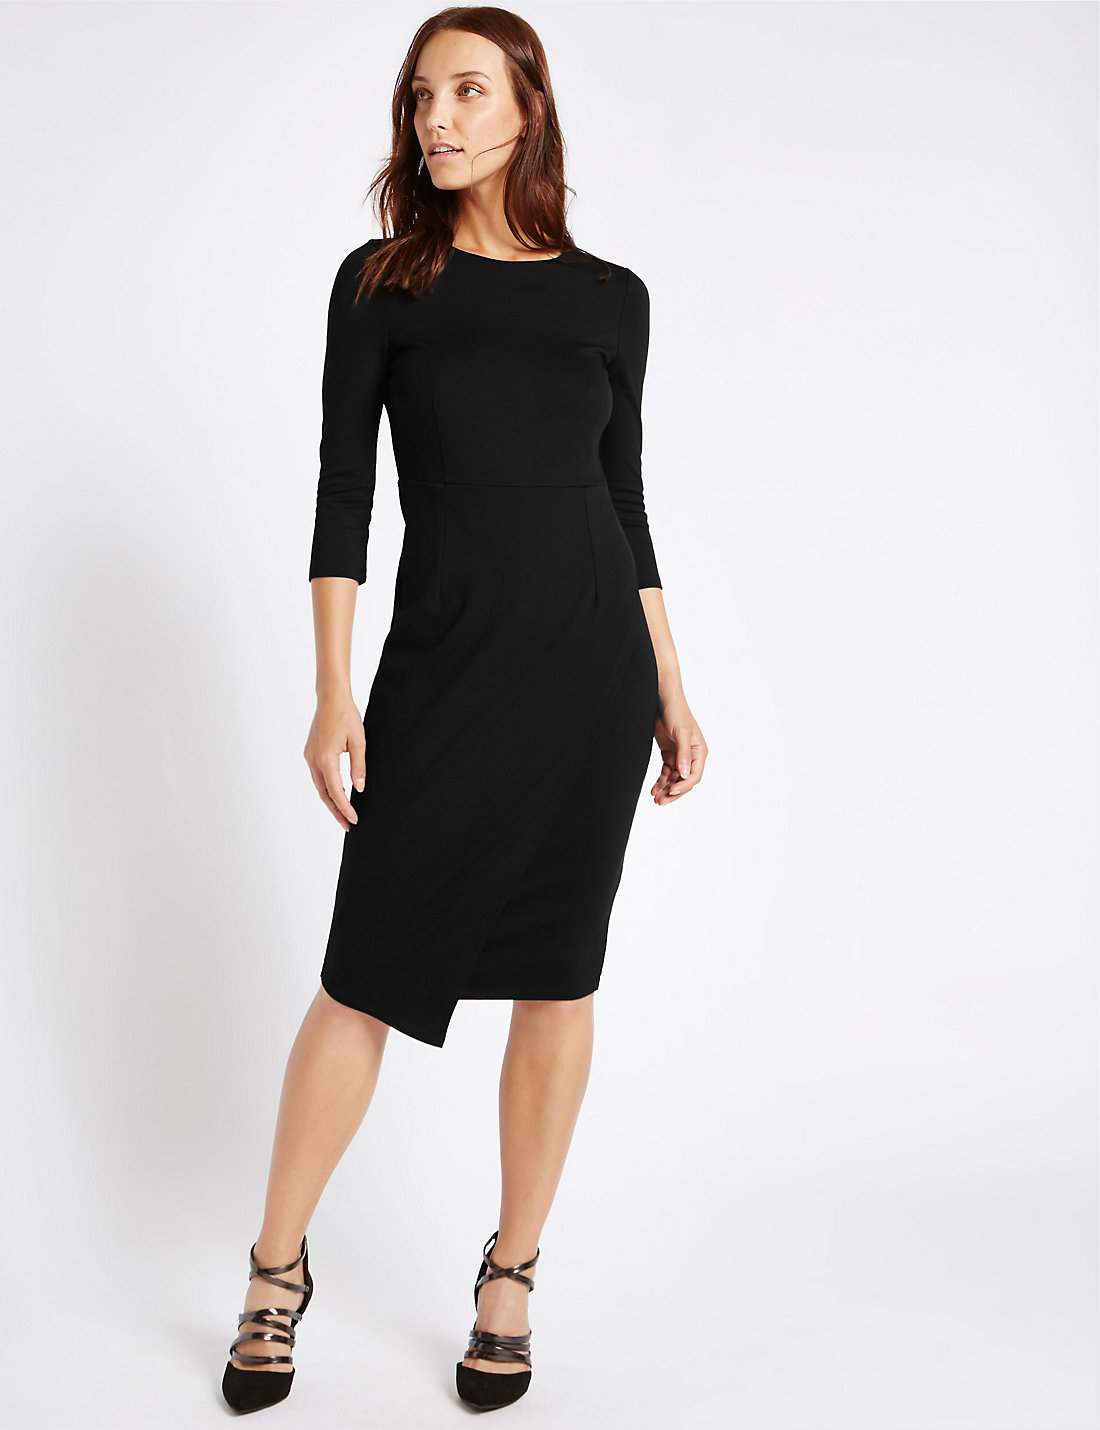 Black dress quarter sleeve - Mock Wrap 3 4 Sleeve Bodycon Dress